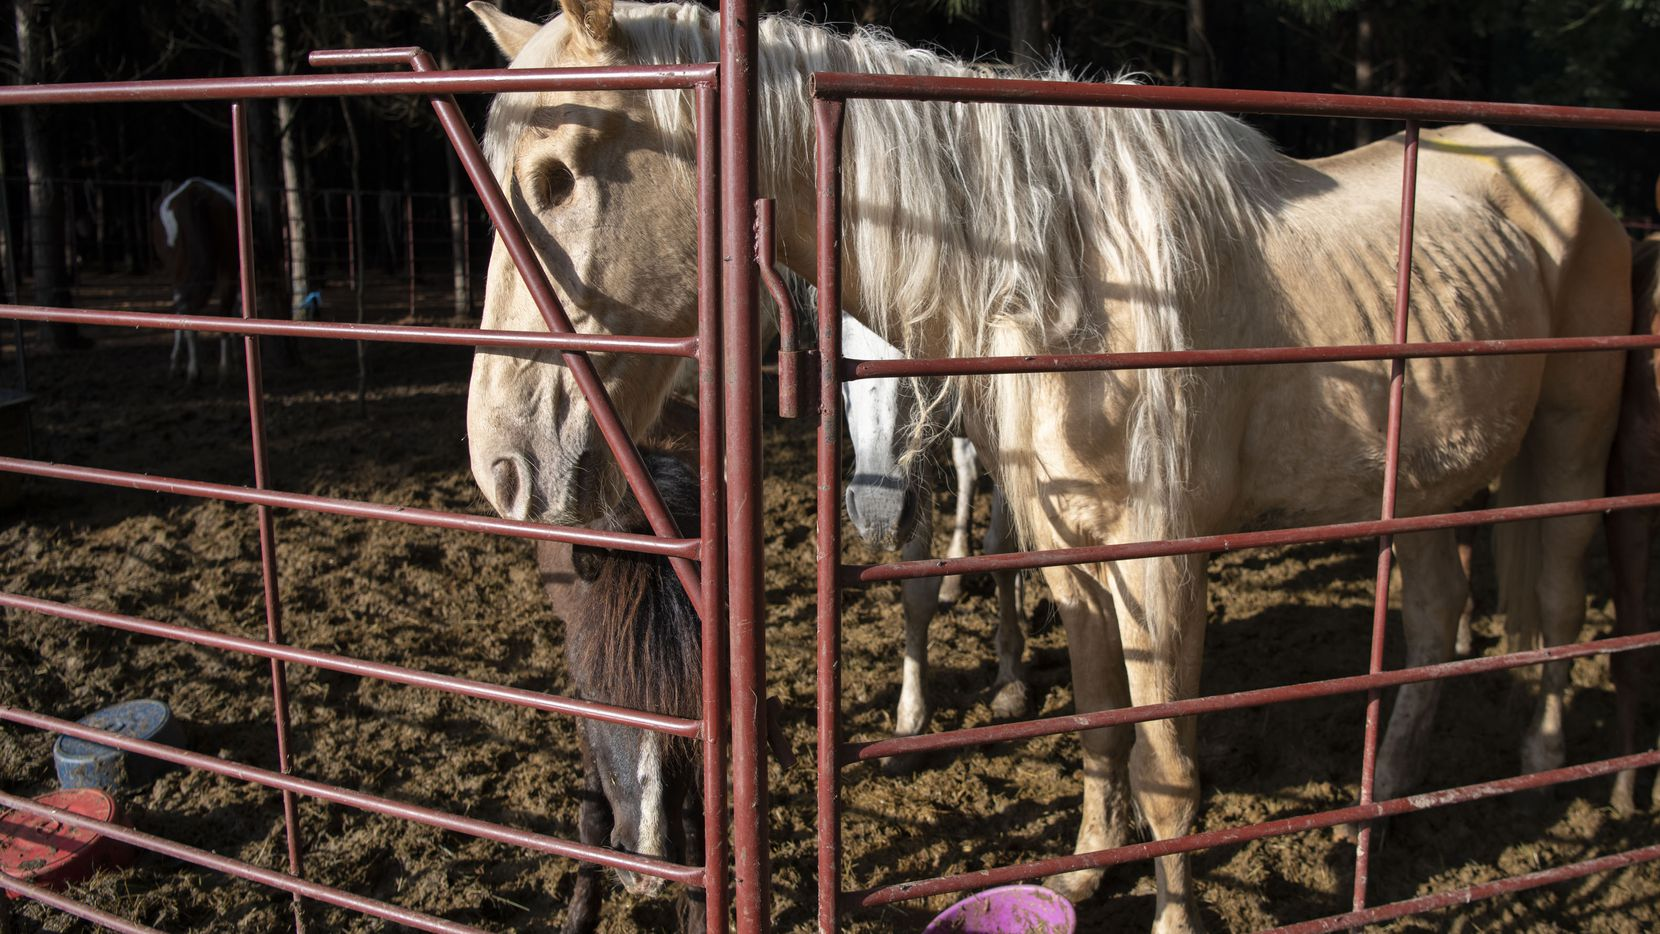 The Humane Society of the United States, with help from Safe Haven Equine Rescue and Retirement Home, assisted the Camp County Sheriff's Office with the rescue of more than 150 horses from an alleged cruelty situation in East Texas on Thursday.